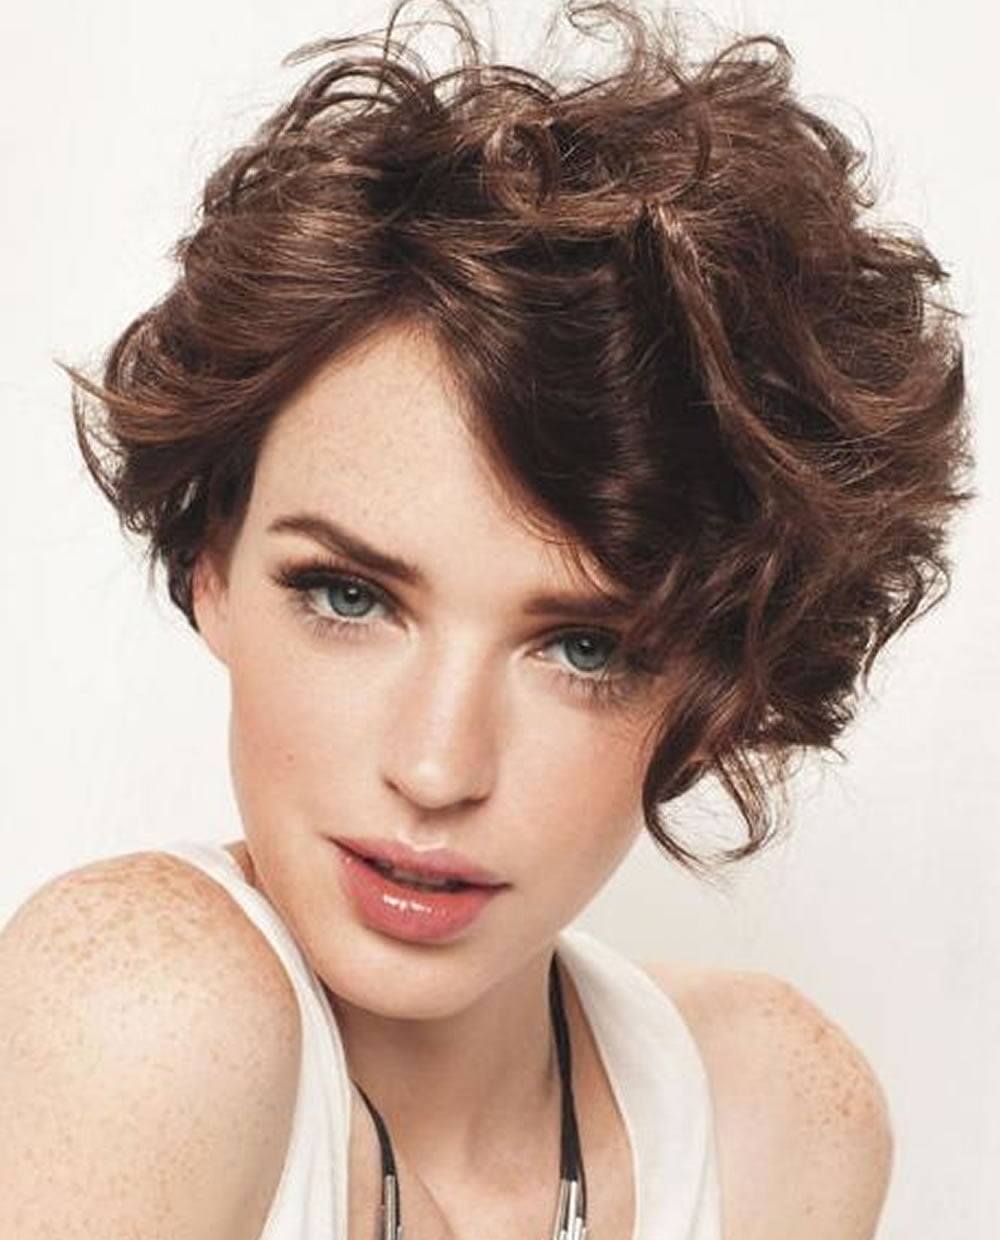 Asymmetrical Short Curly Hair Styles 2018 2019 Amp Short Bob Haircuts Page 8 Hairstyles